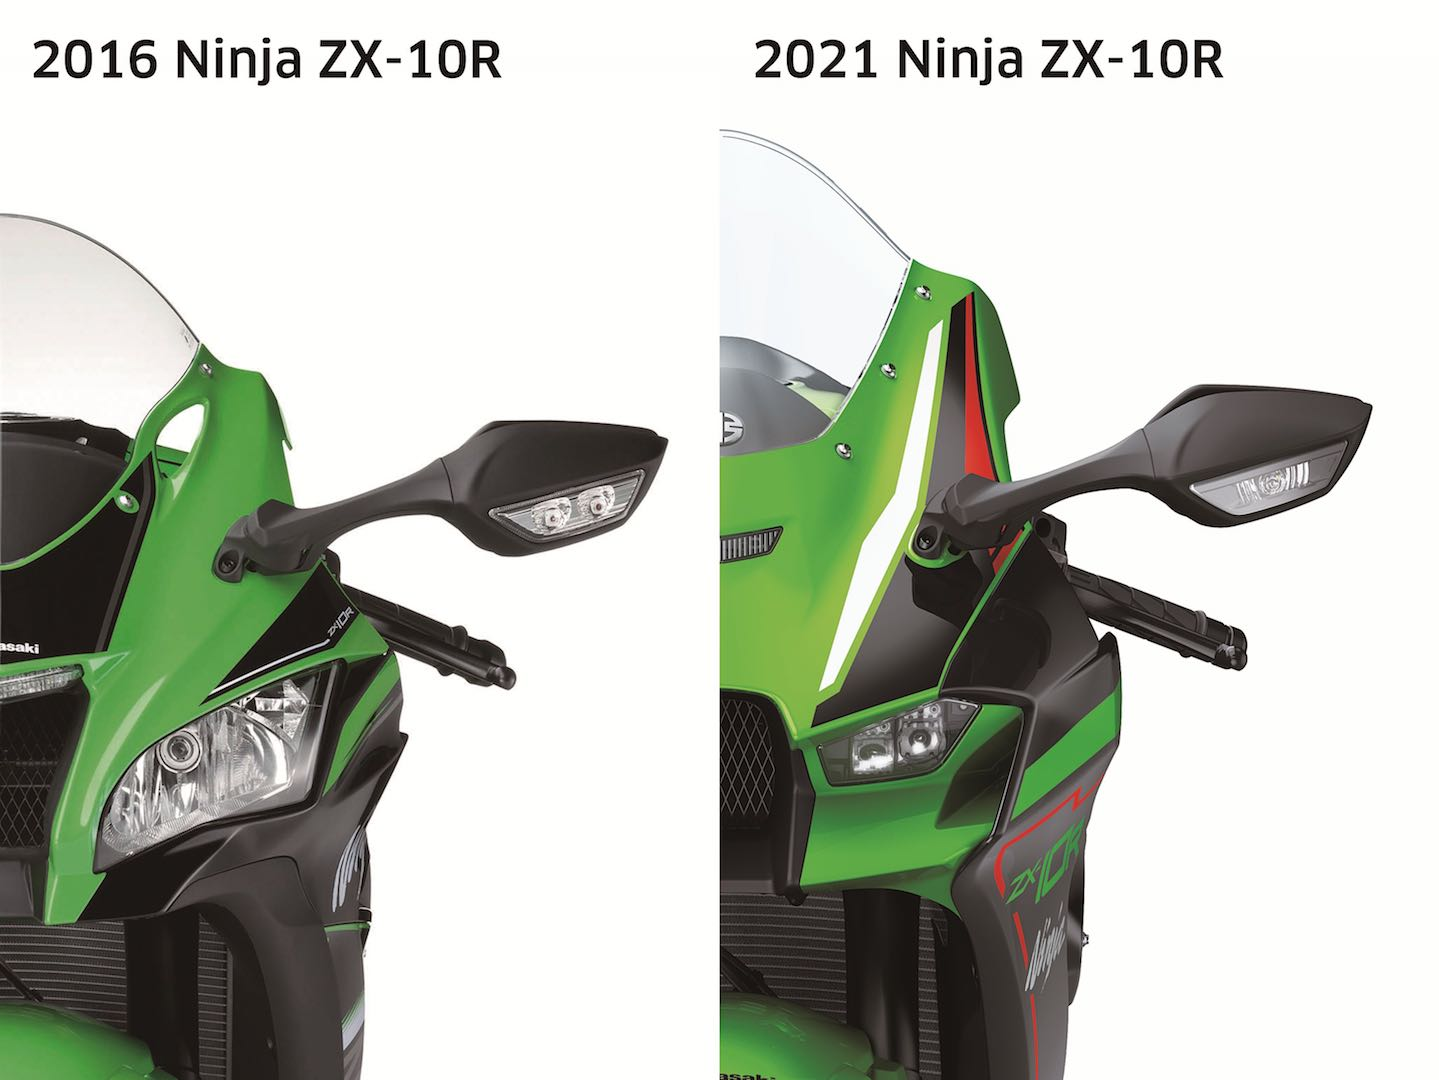 2021 ZX-10R compared to 2016